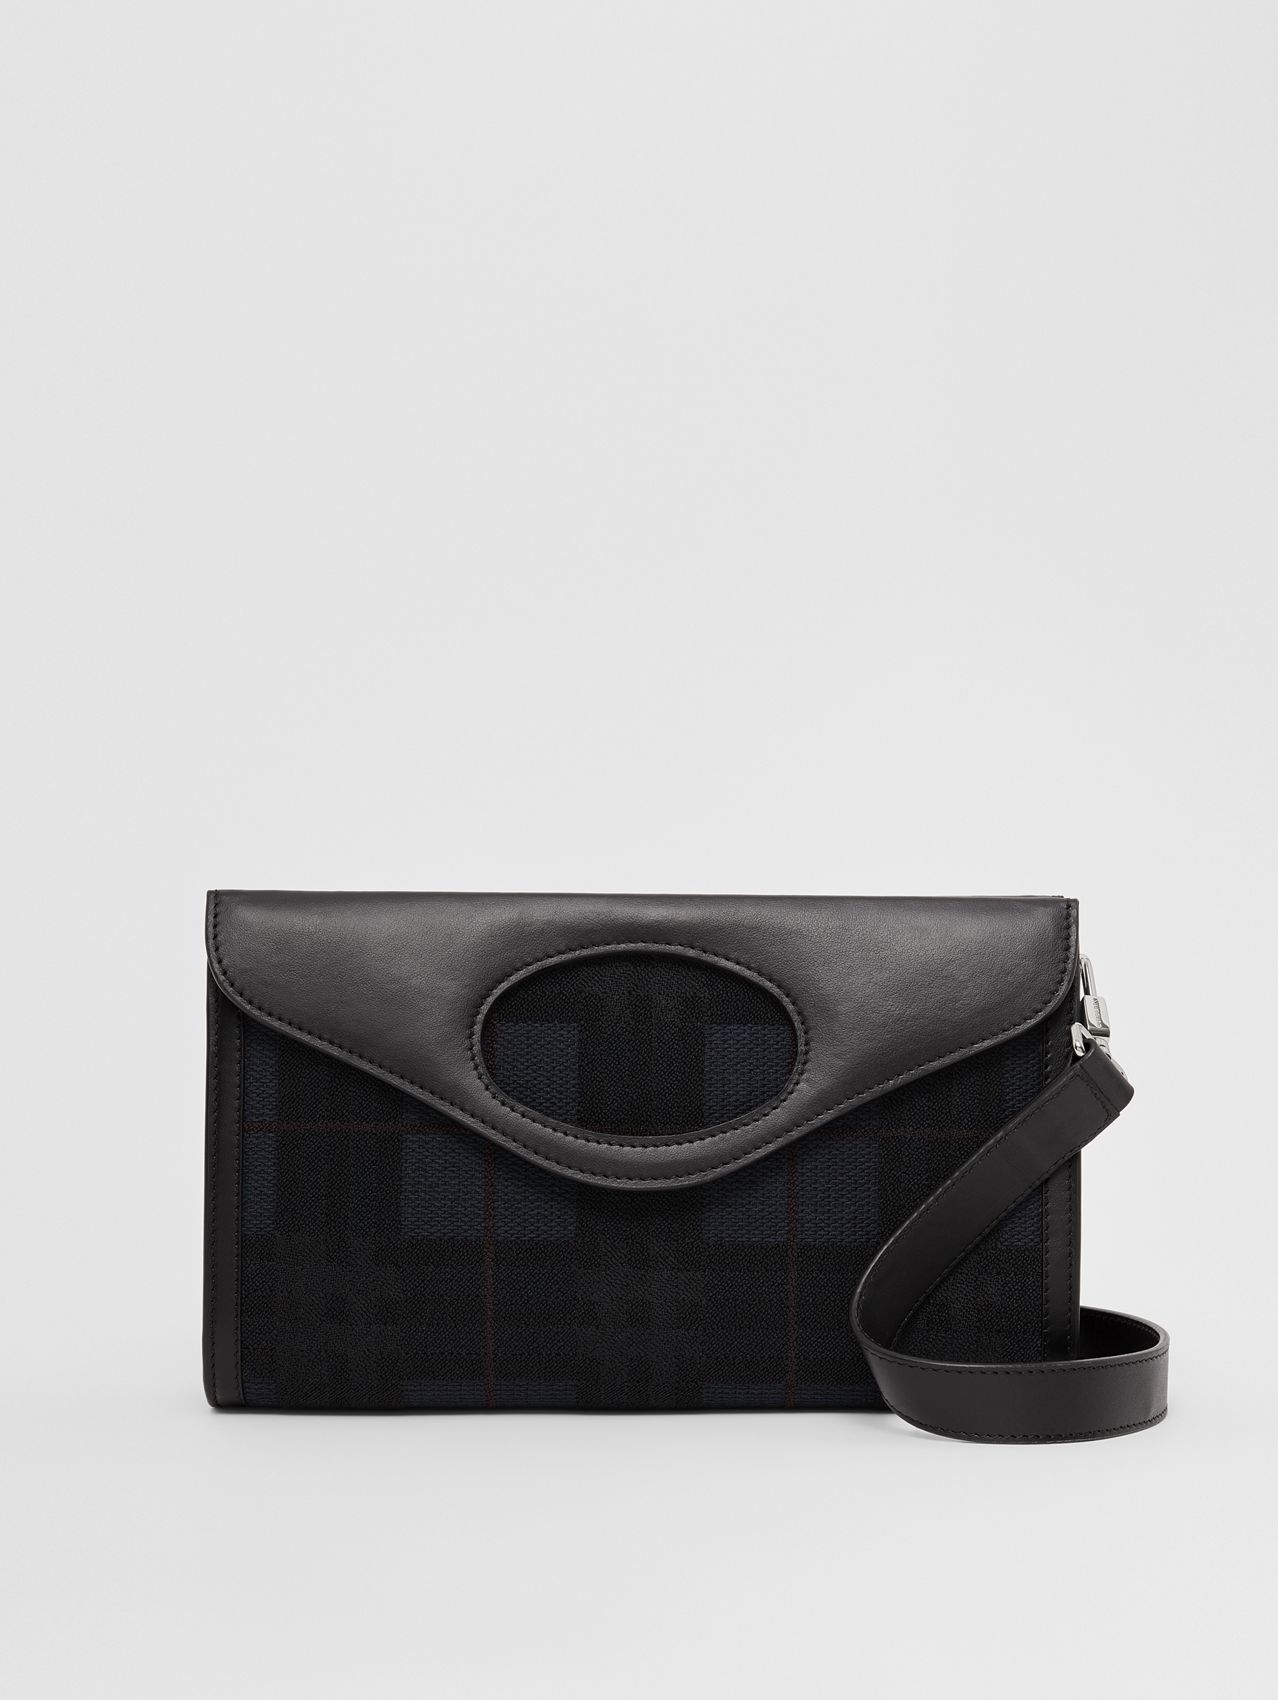 Embroidered Check Canvas Foldover Pocket Bag in Navy